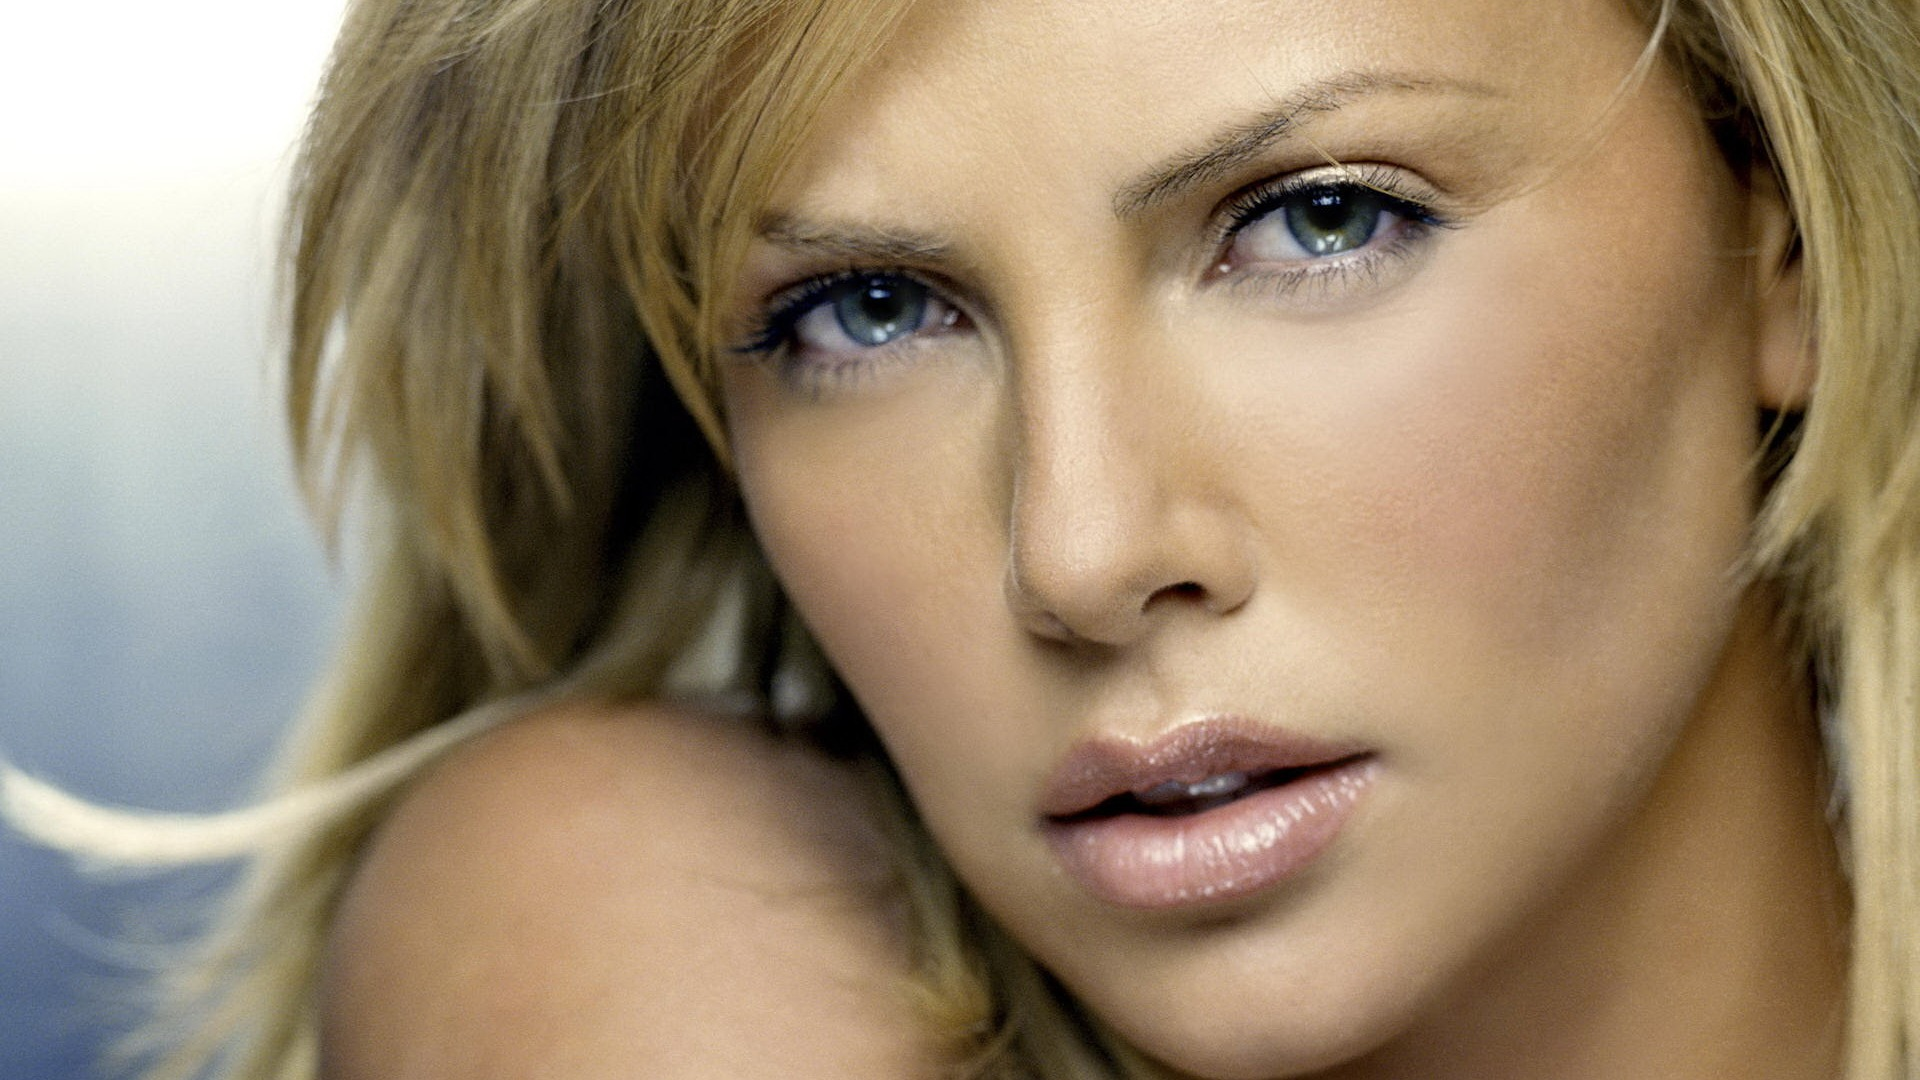 Charlize Theron #029 - 1920x1080 Wallpapers Pictures Photos Images